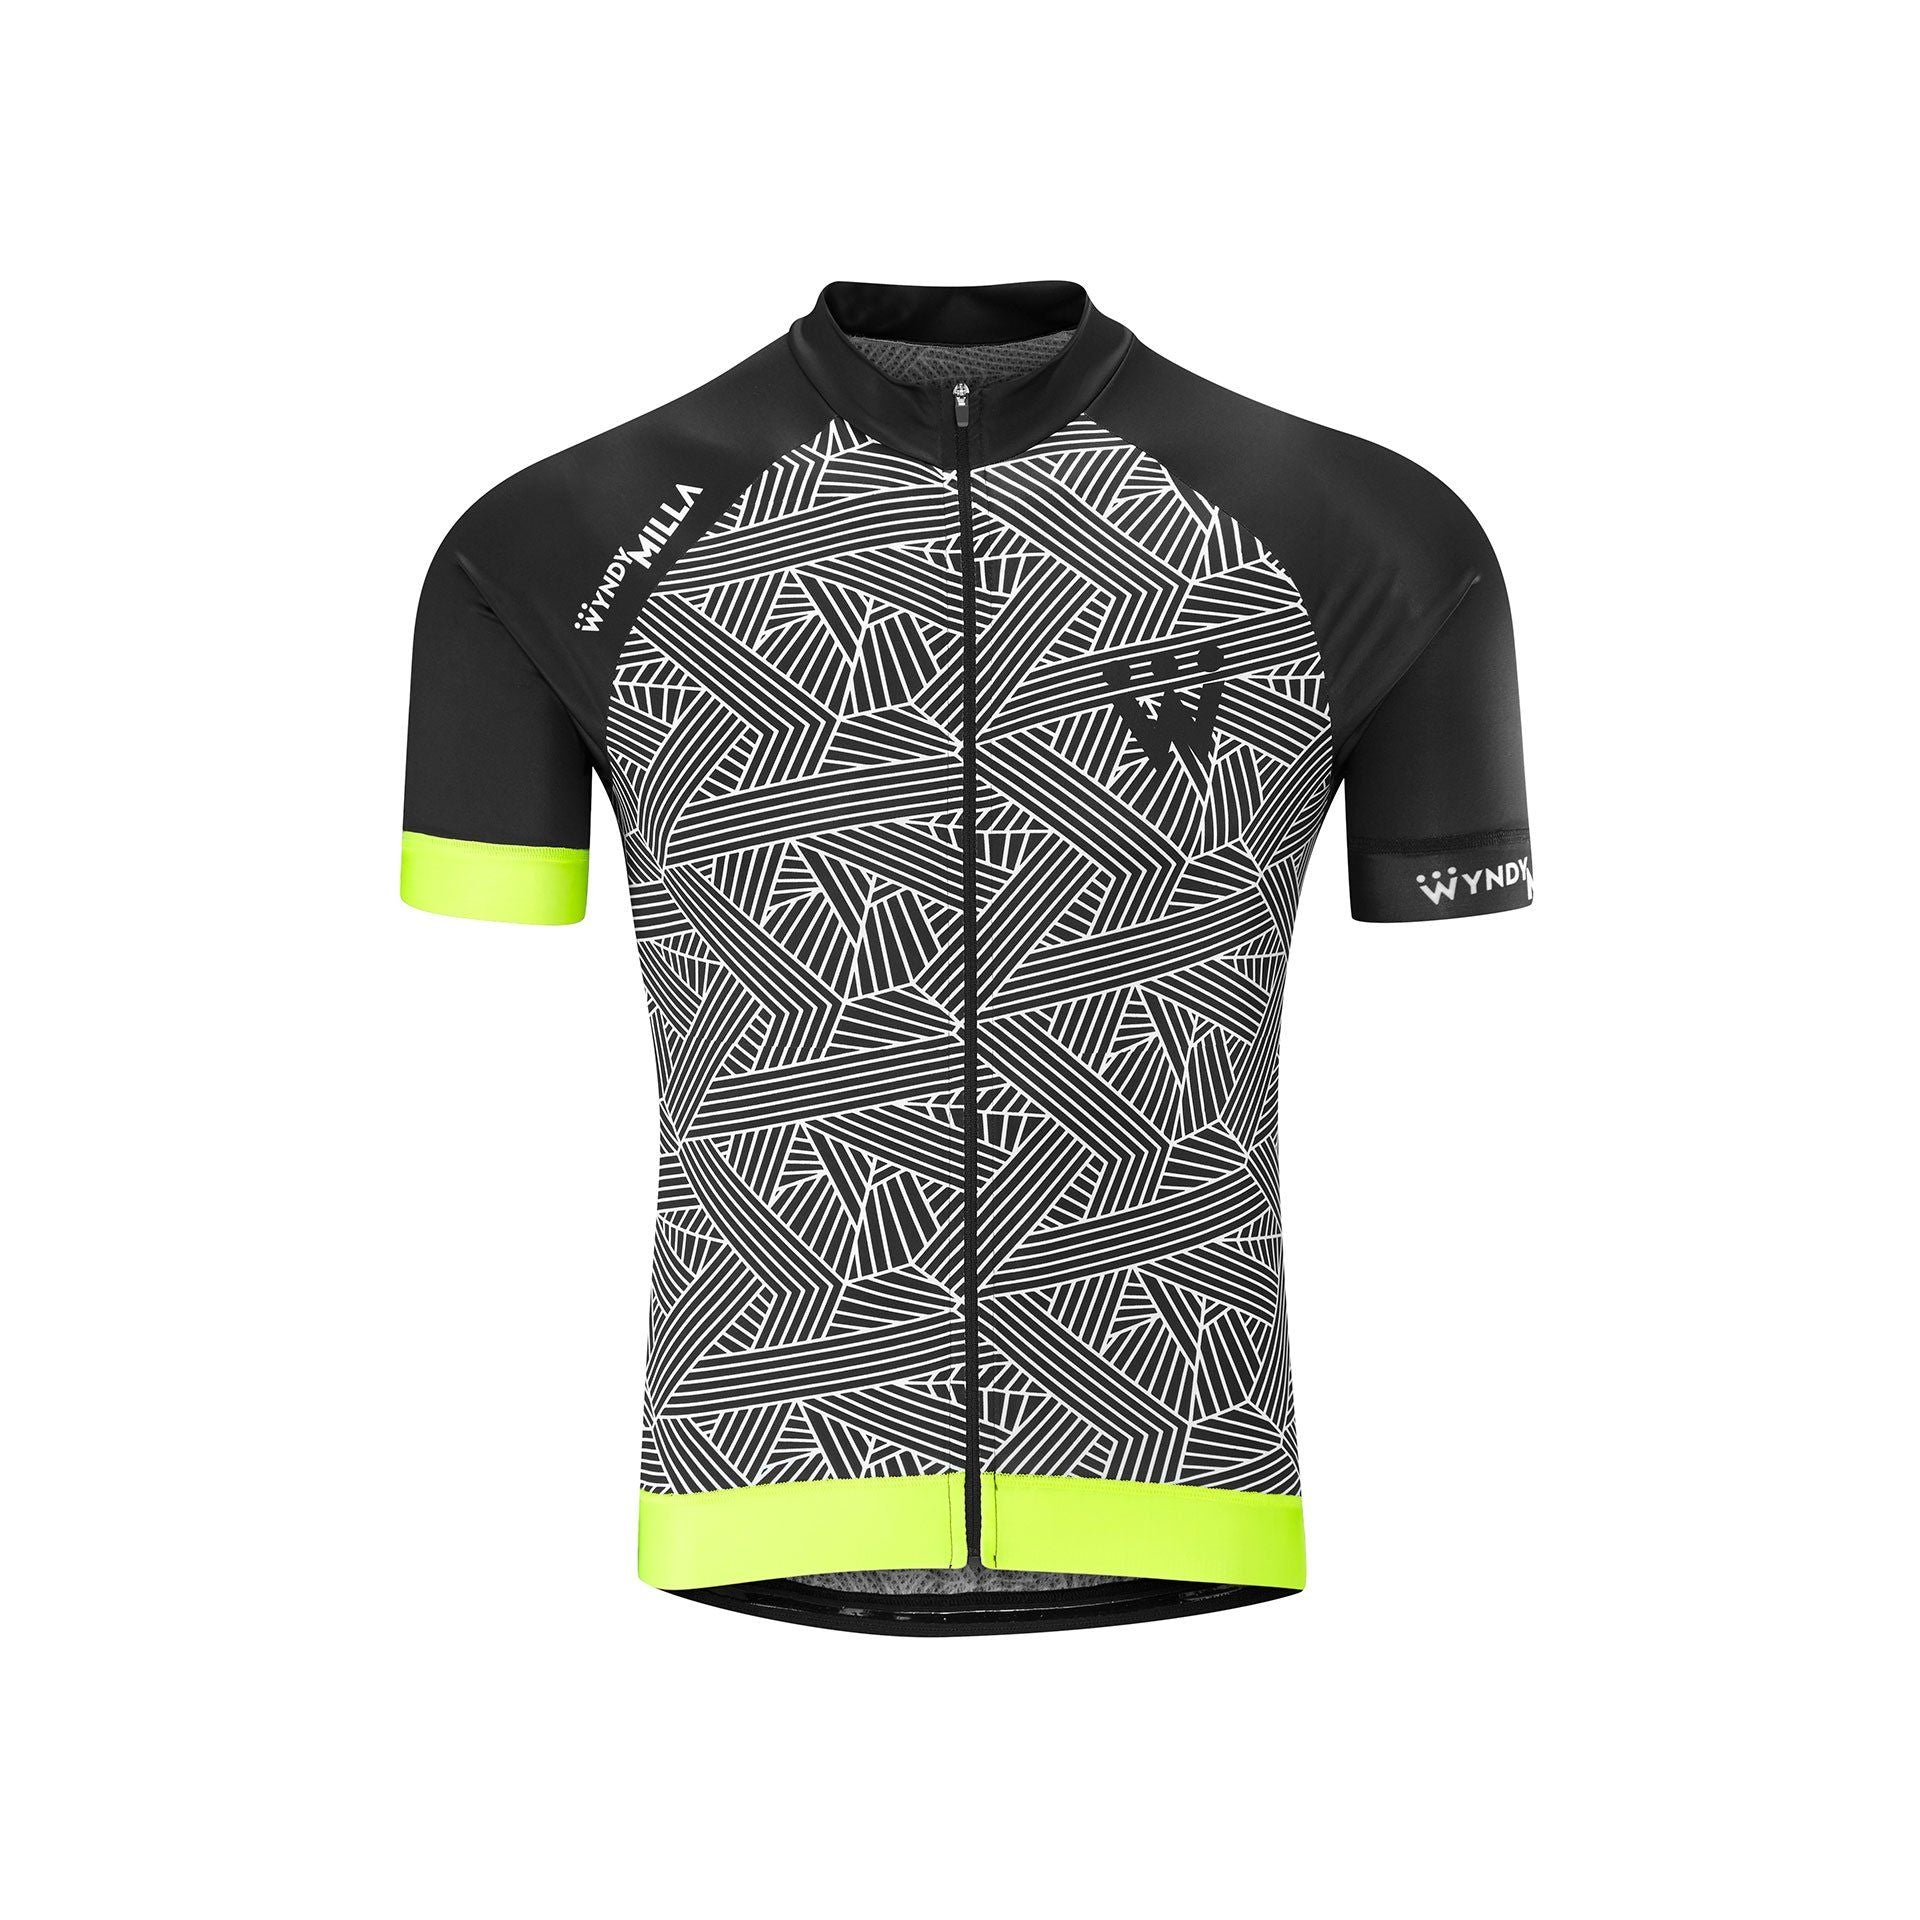 Optical Illusion Jersey by Flourish Design Studios